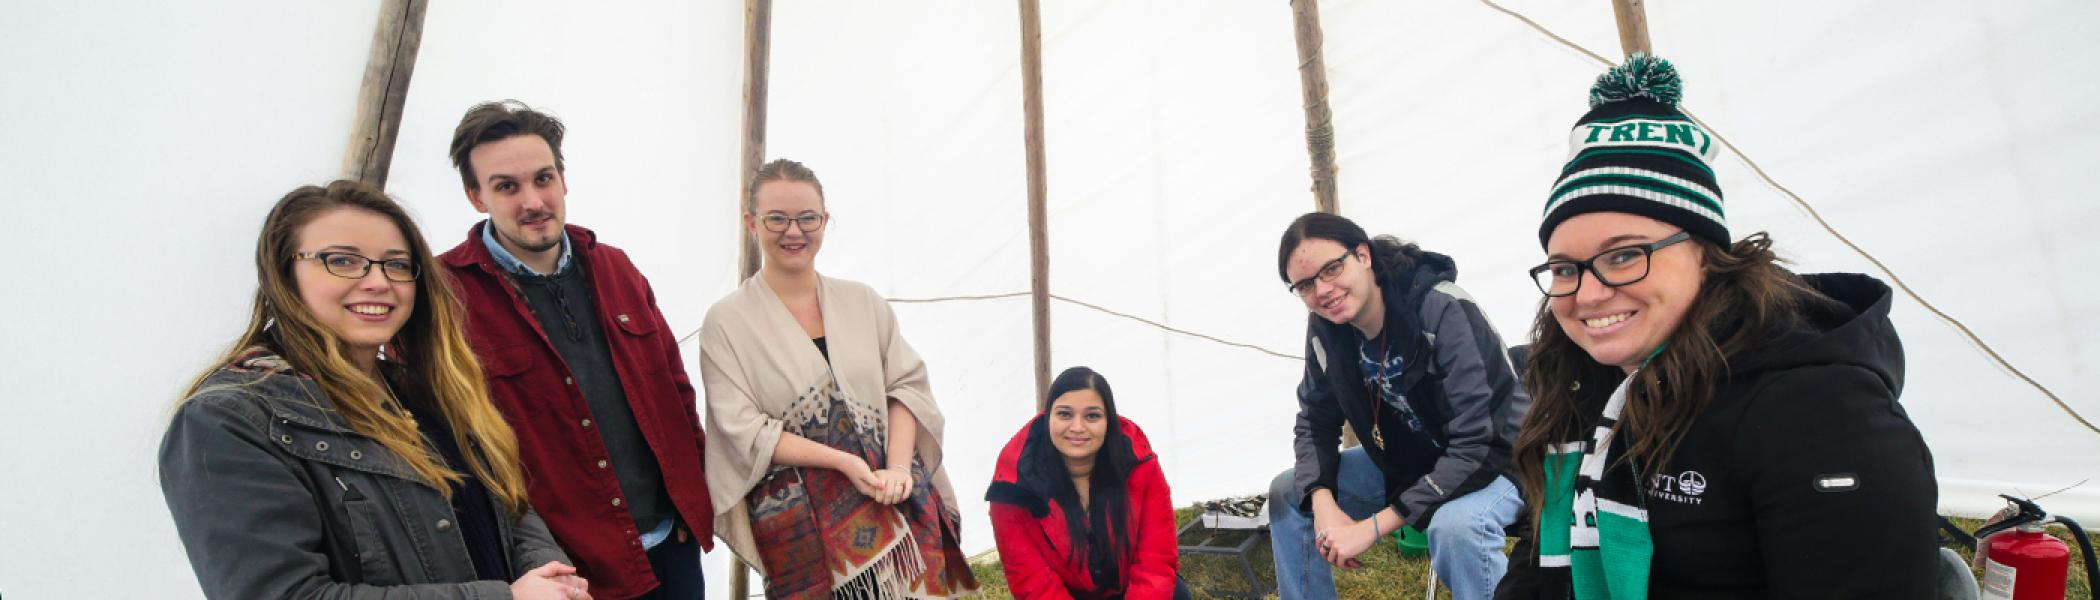 Students gathered in tipi